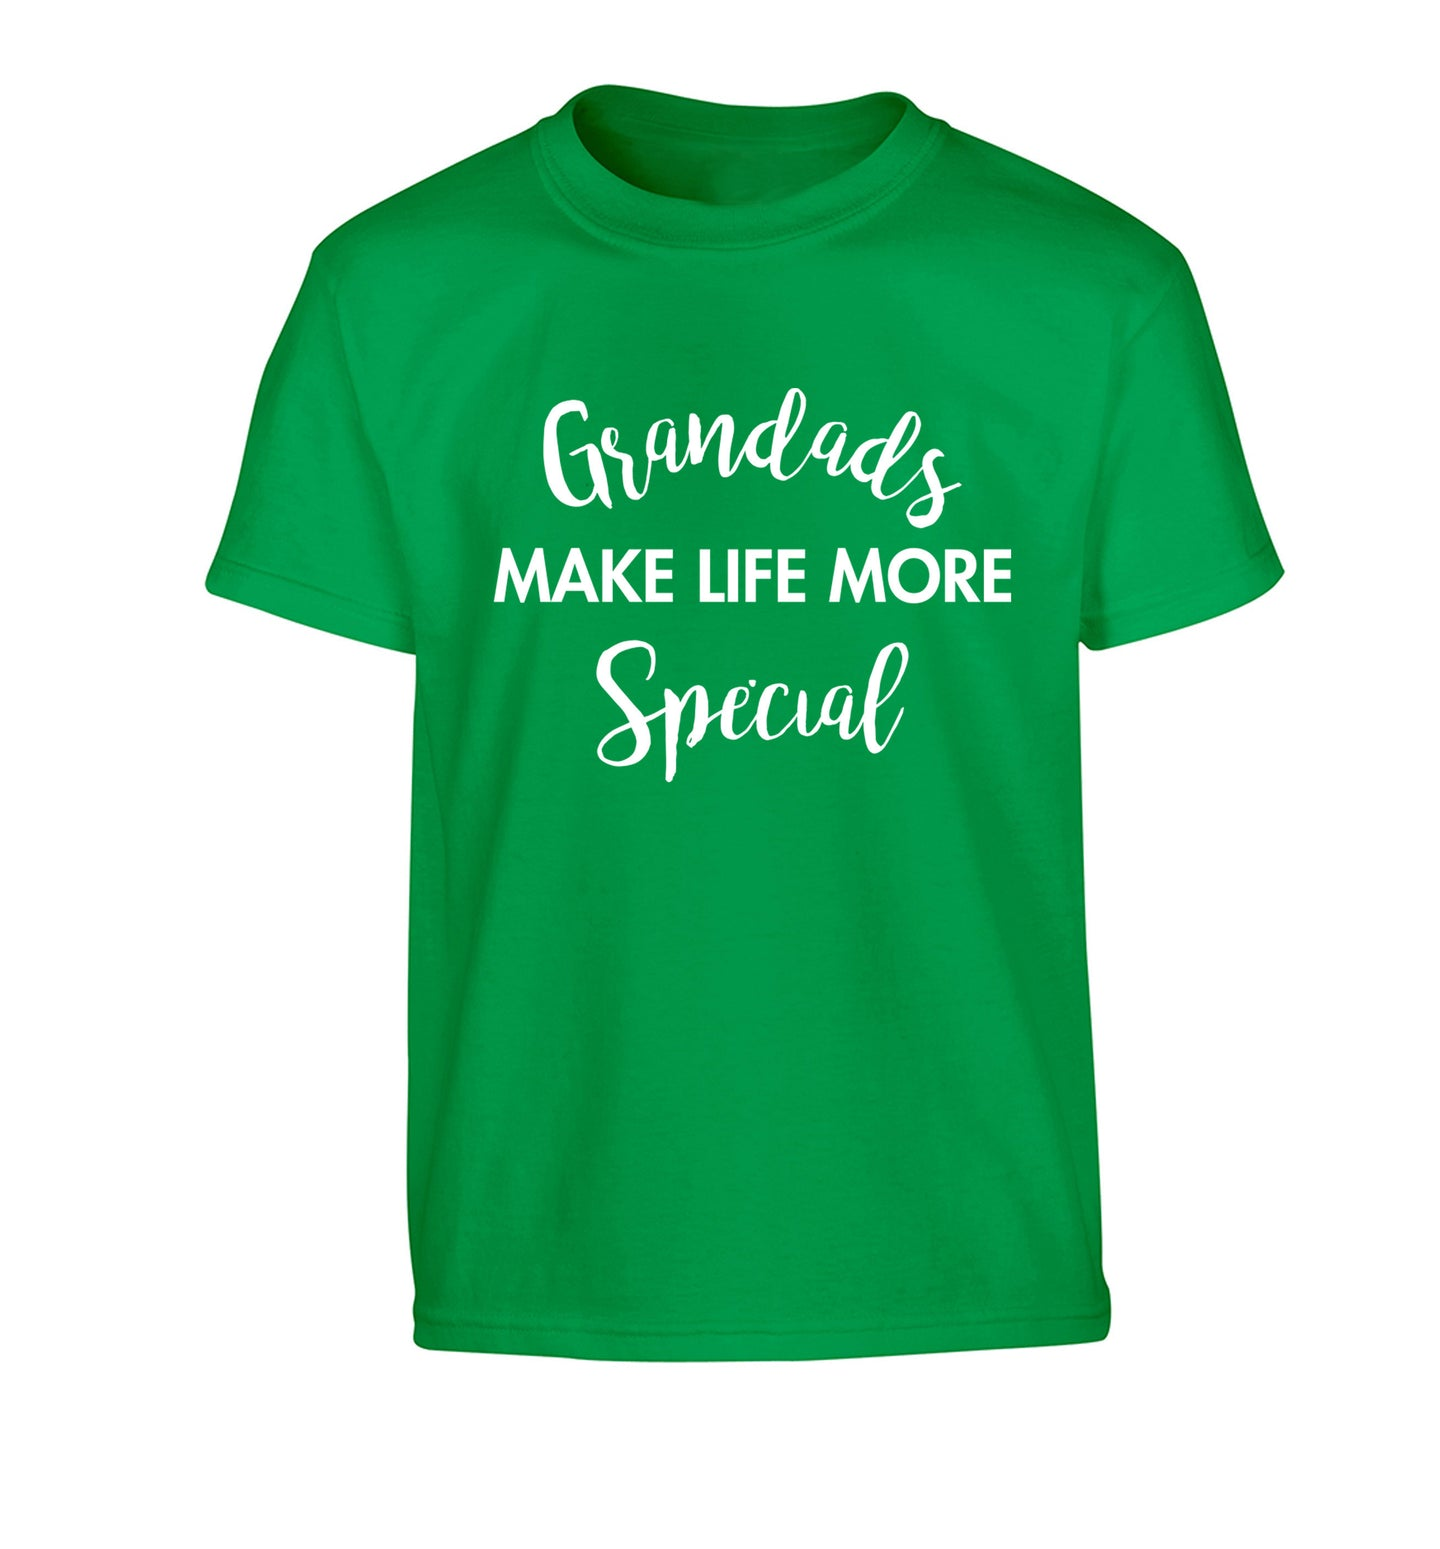 Grandads make life more special Children's green Tshirt 12-14 Years